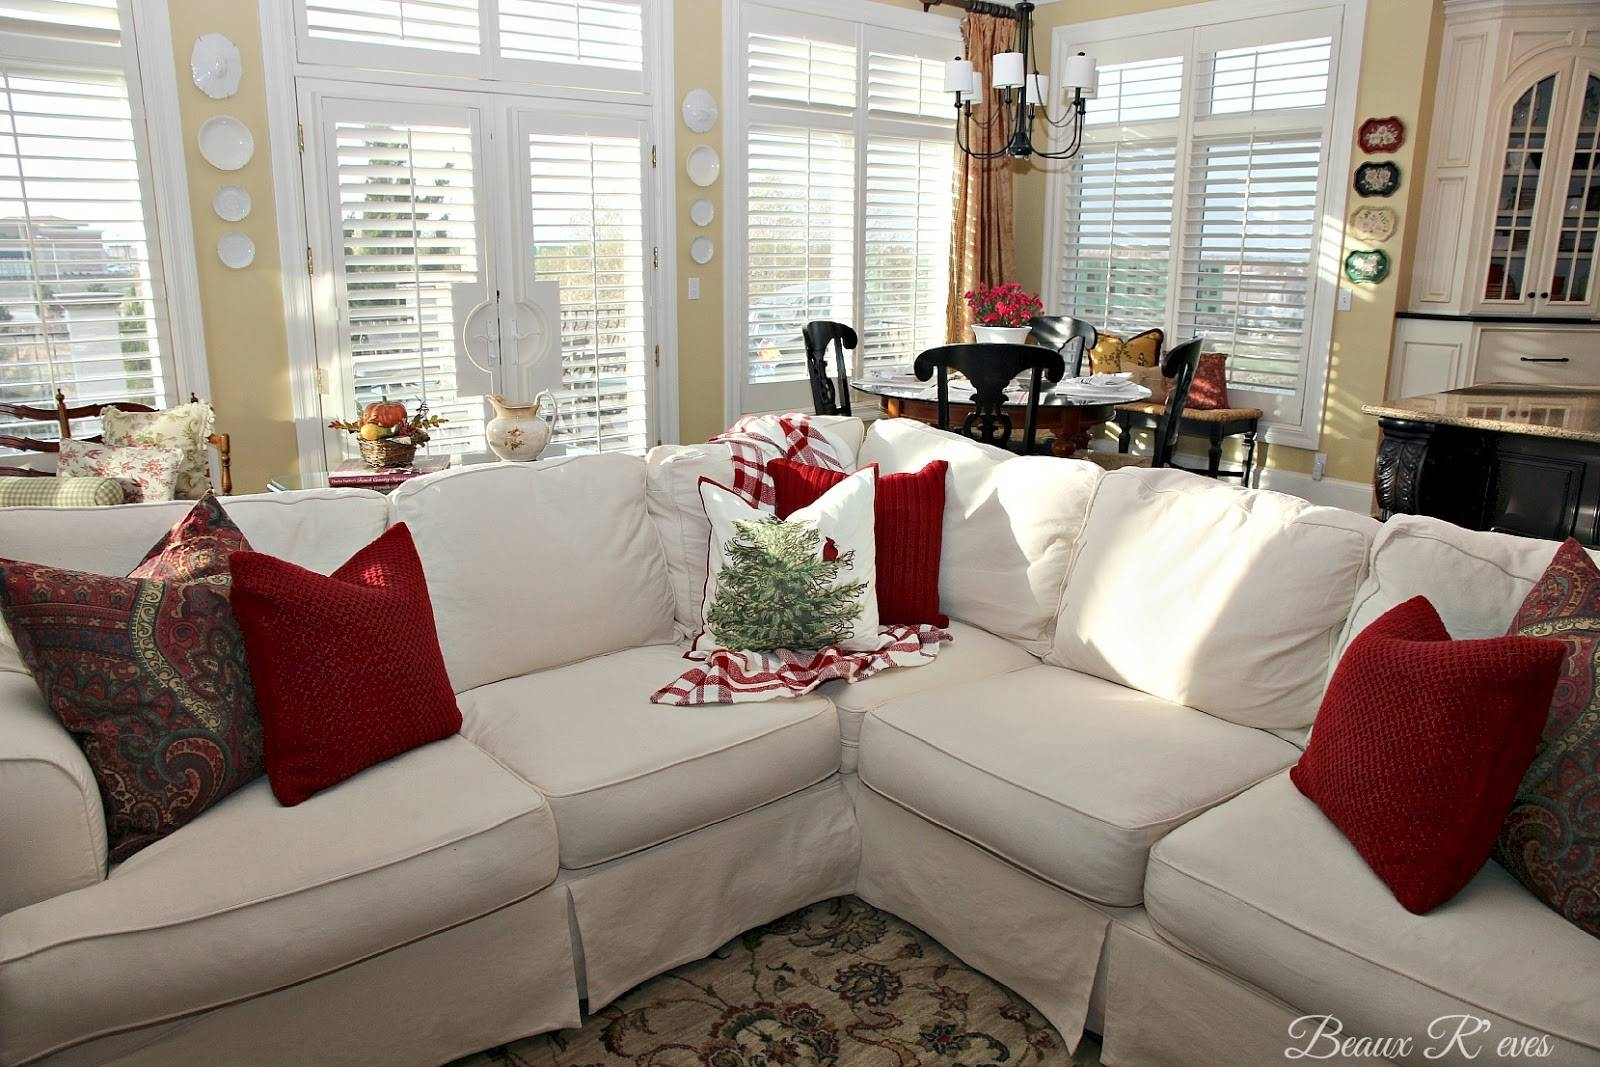 Beaux R'eves: Pottery Barn Knock Off Jcpenney Slipcovered For Jcpenney Sectional Sofas (View 10 of 15)